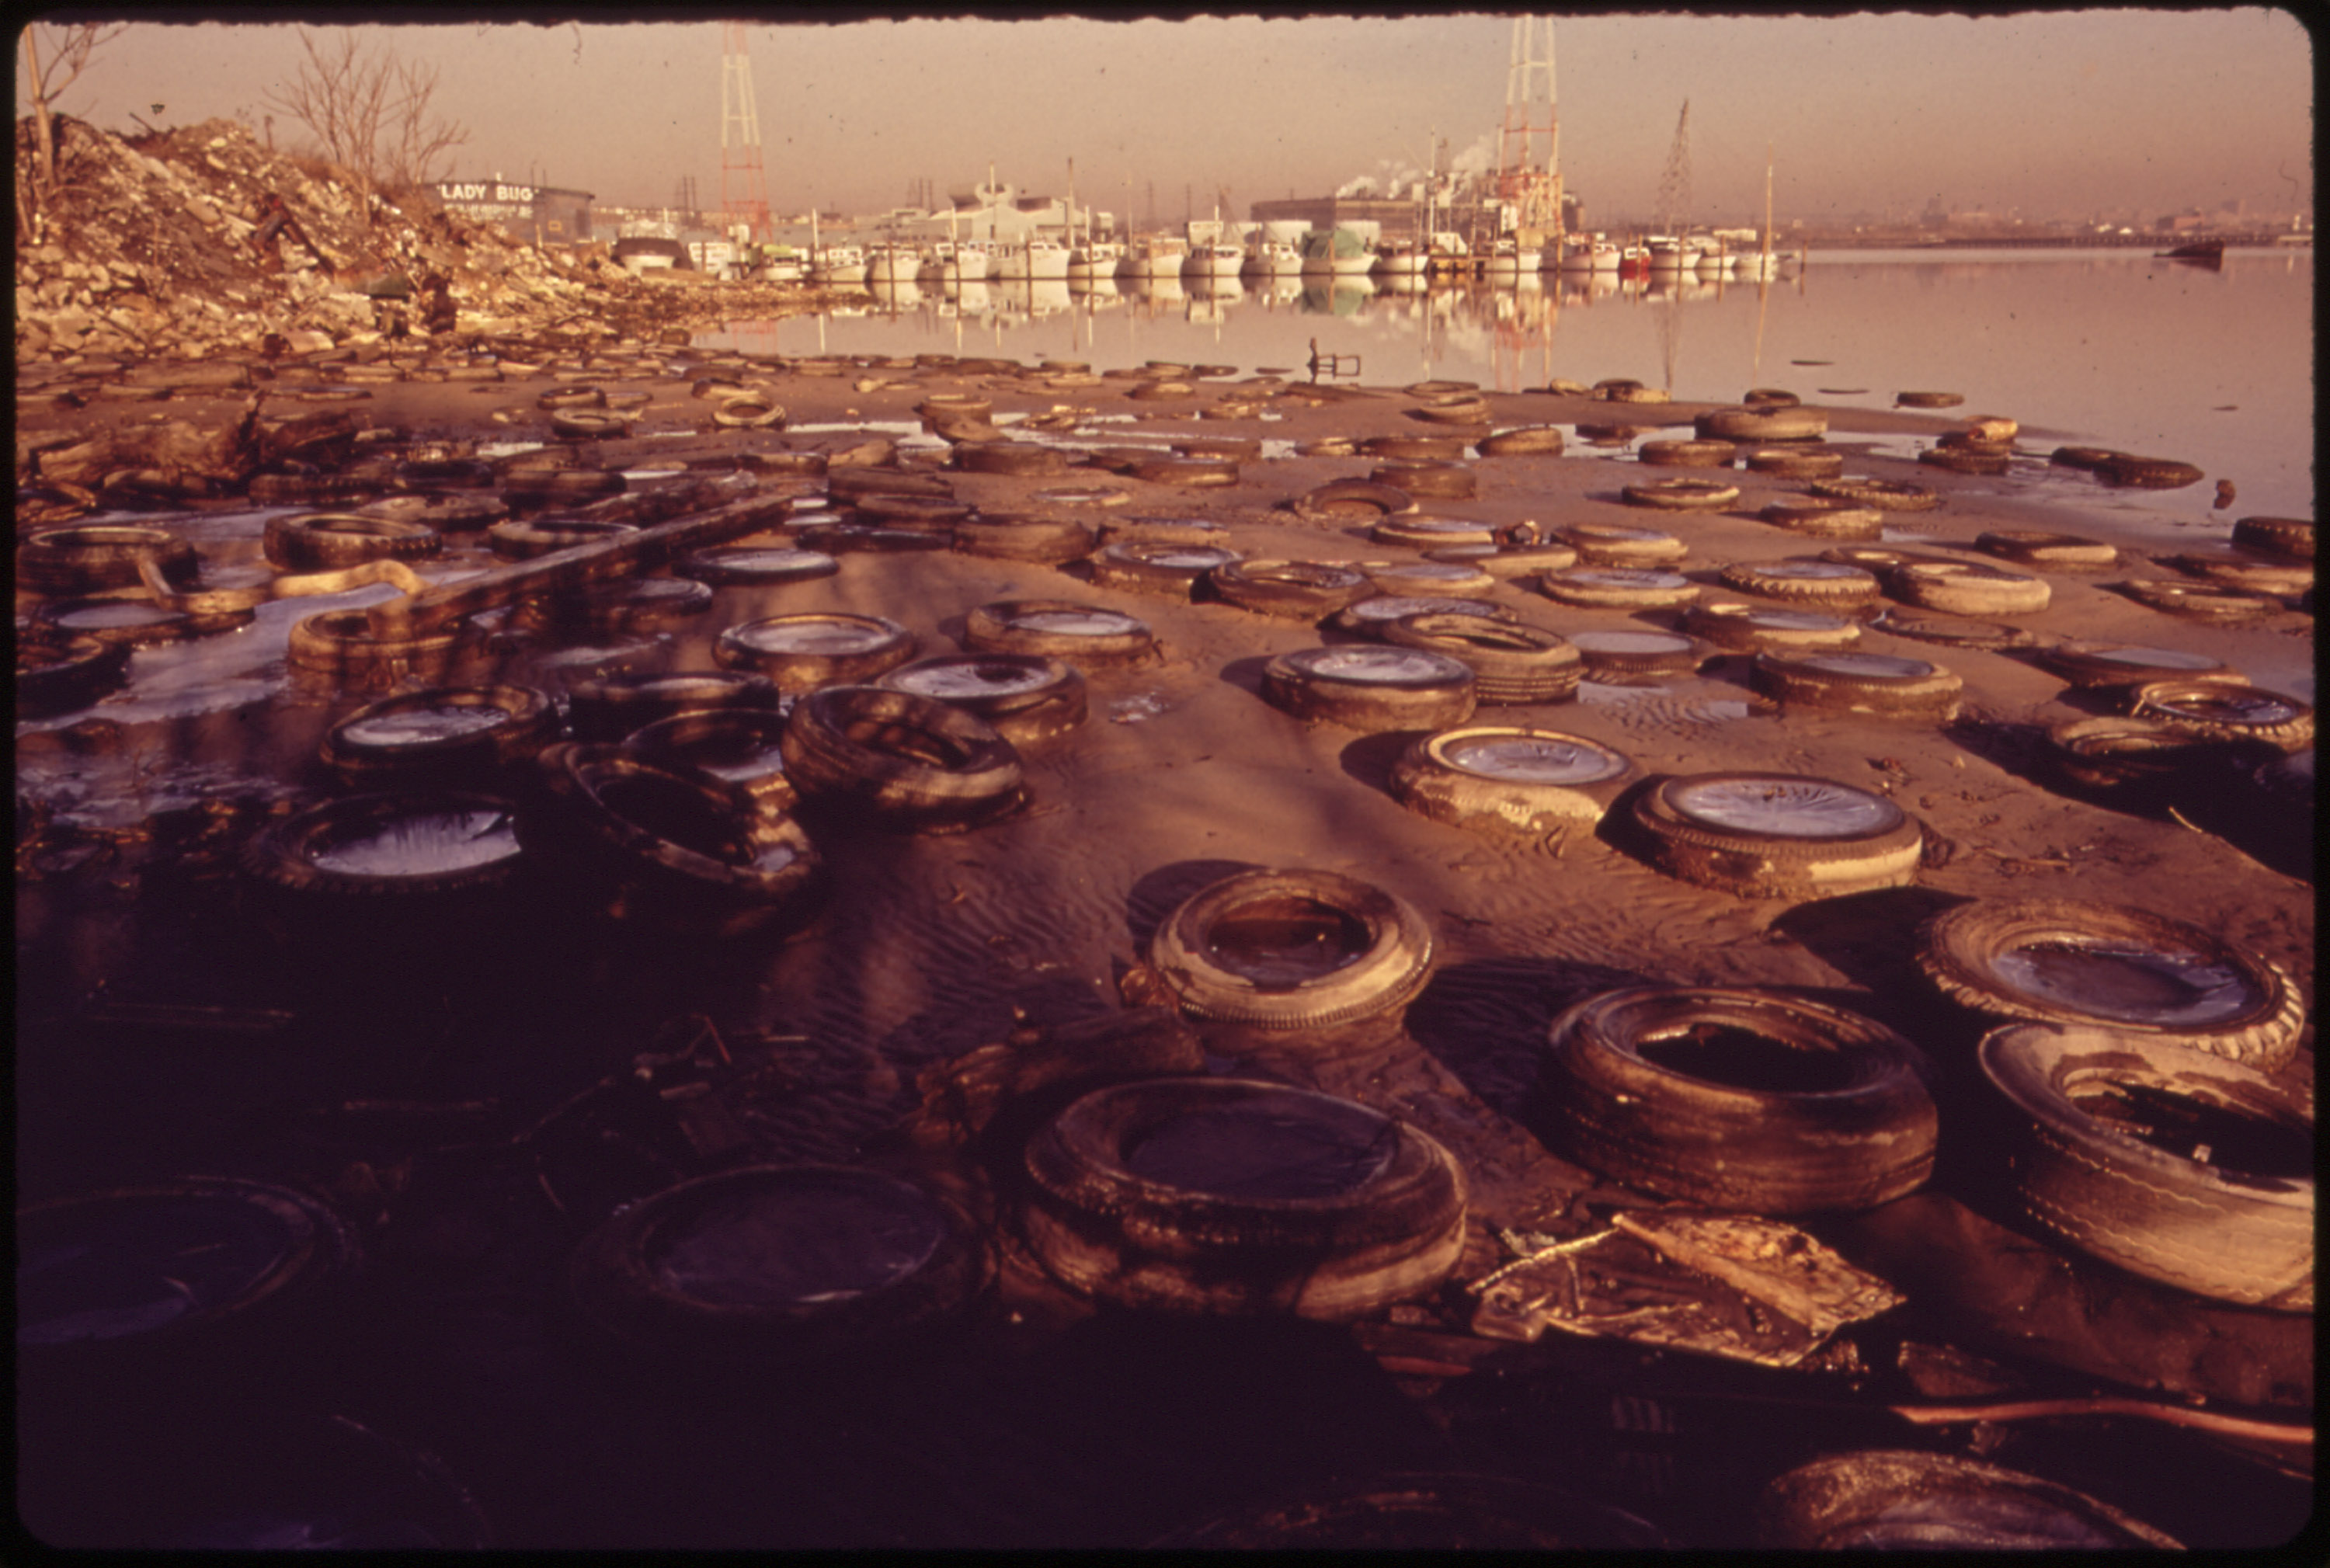 This is What Baltimore Harbor Looked Like in 1973